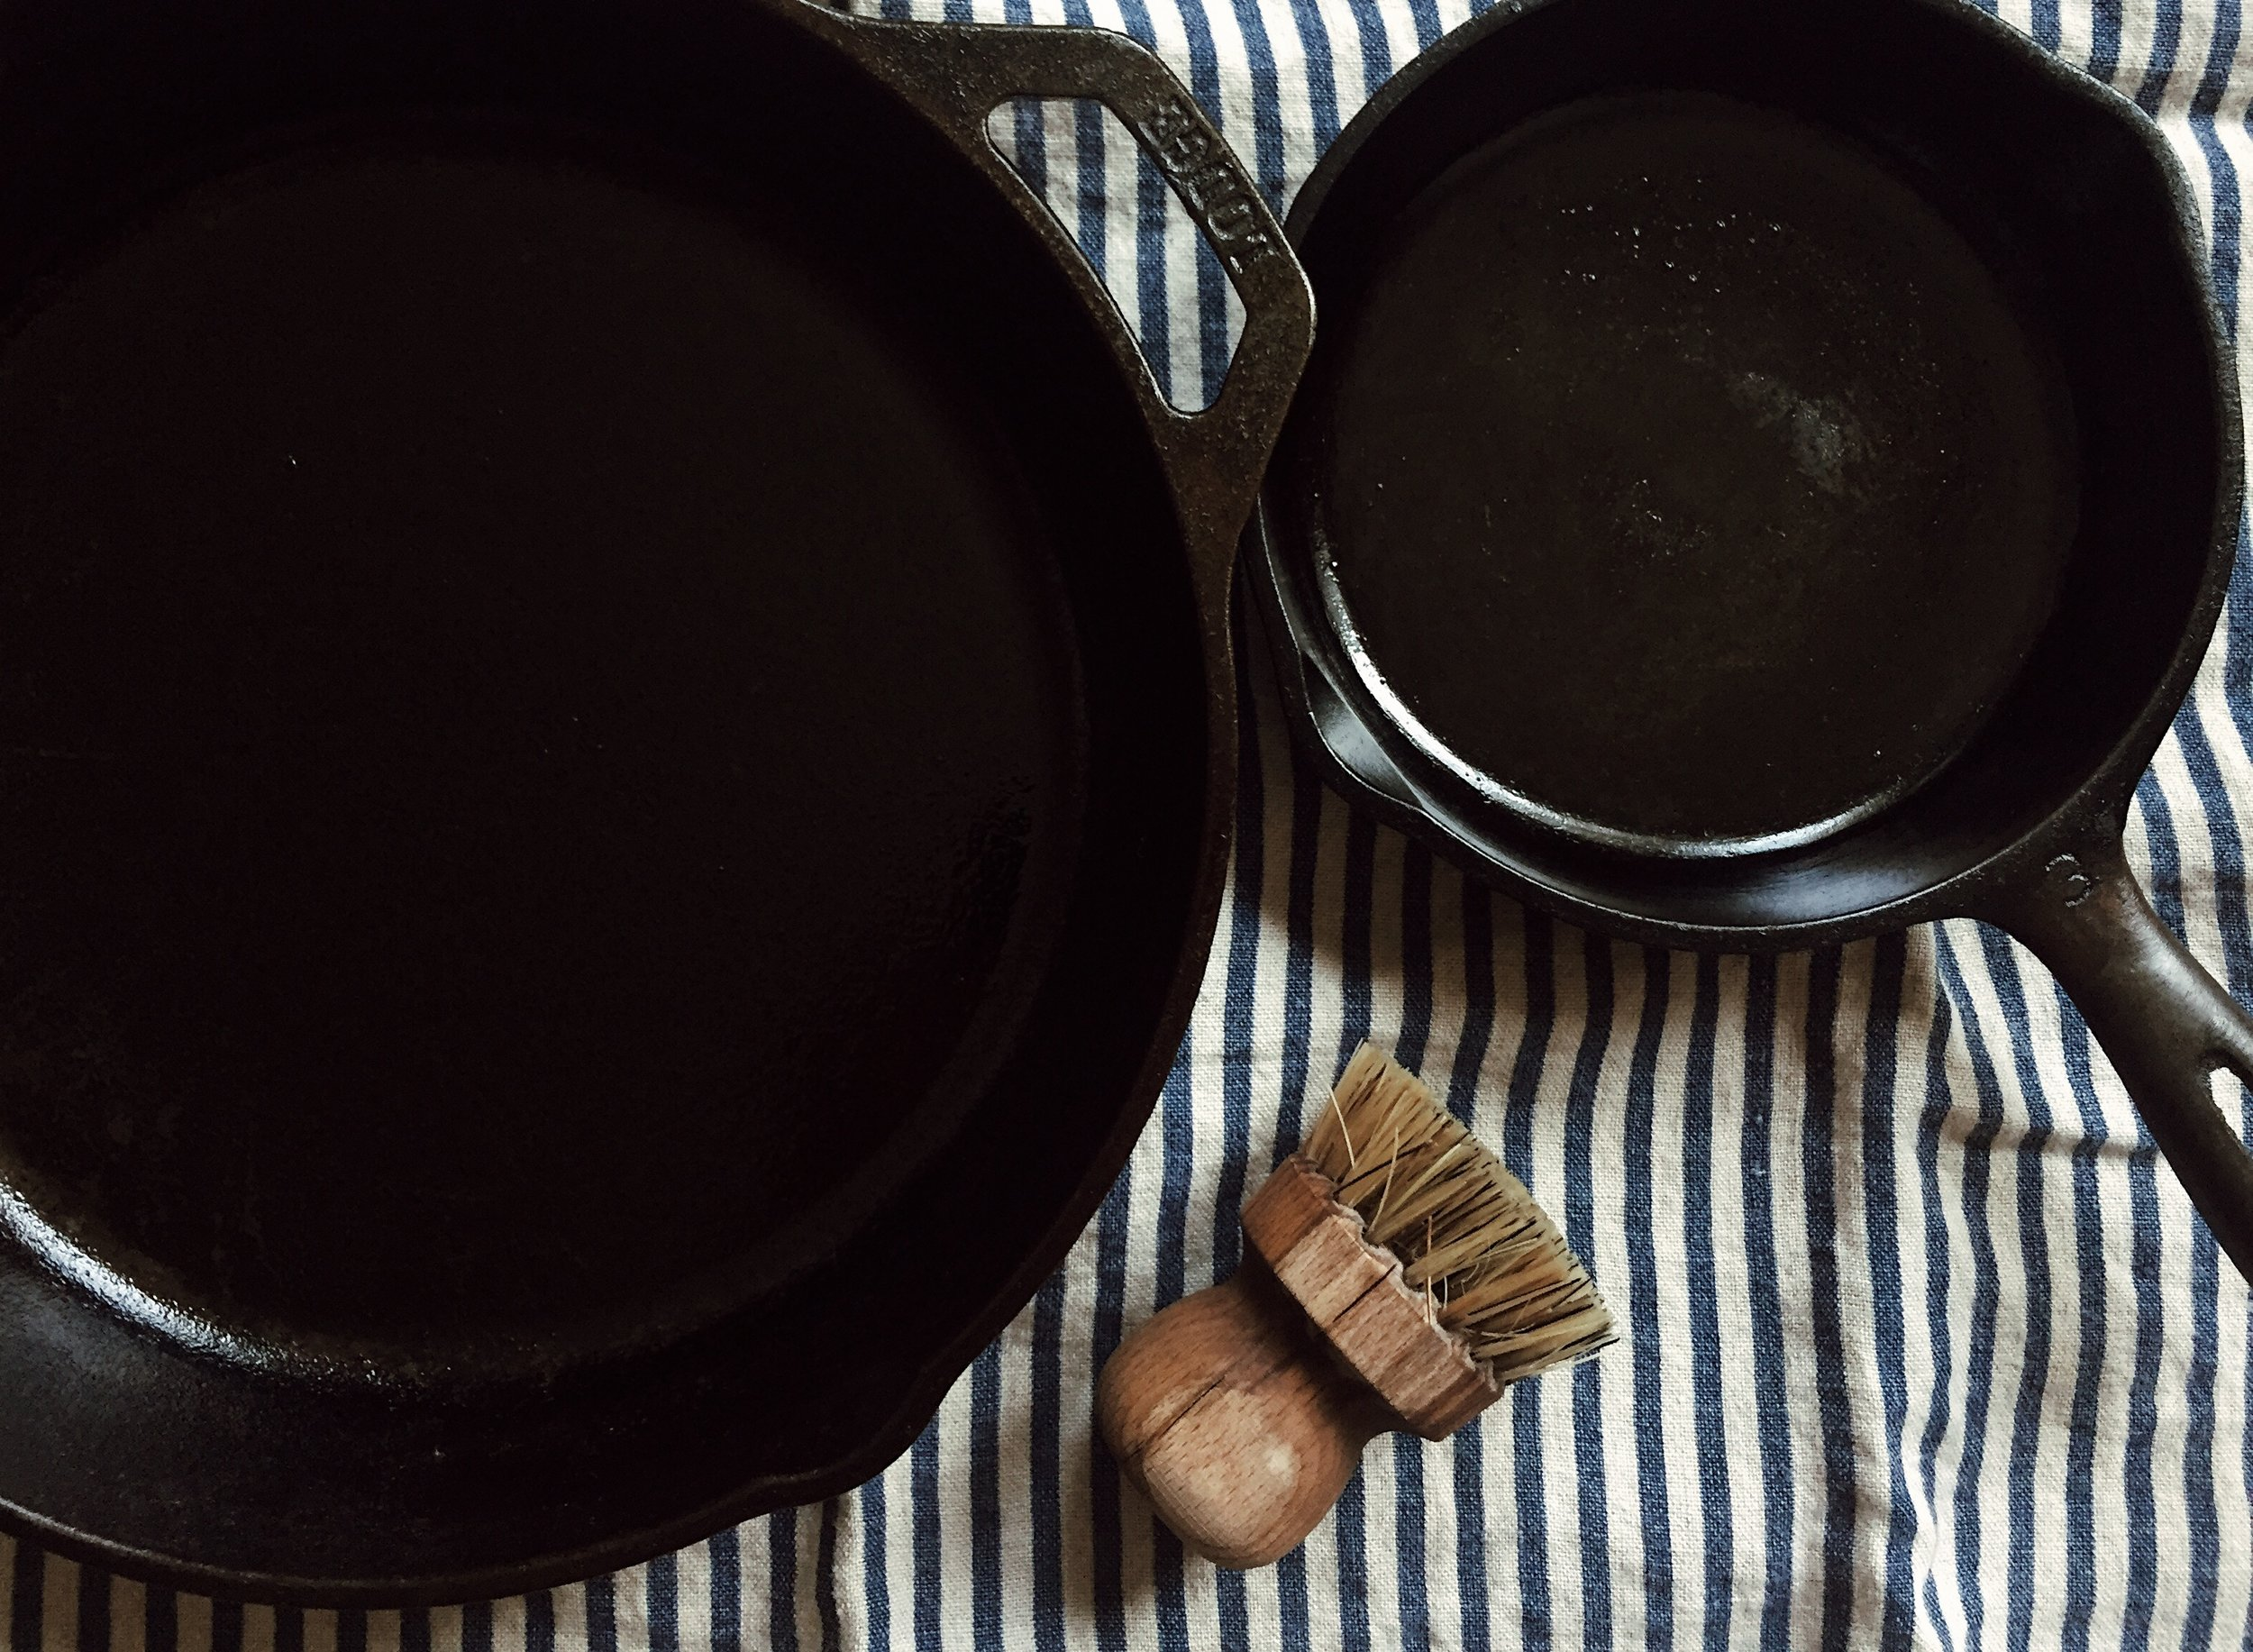 cooking with cast irons